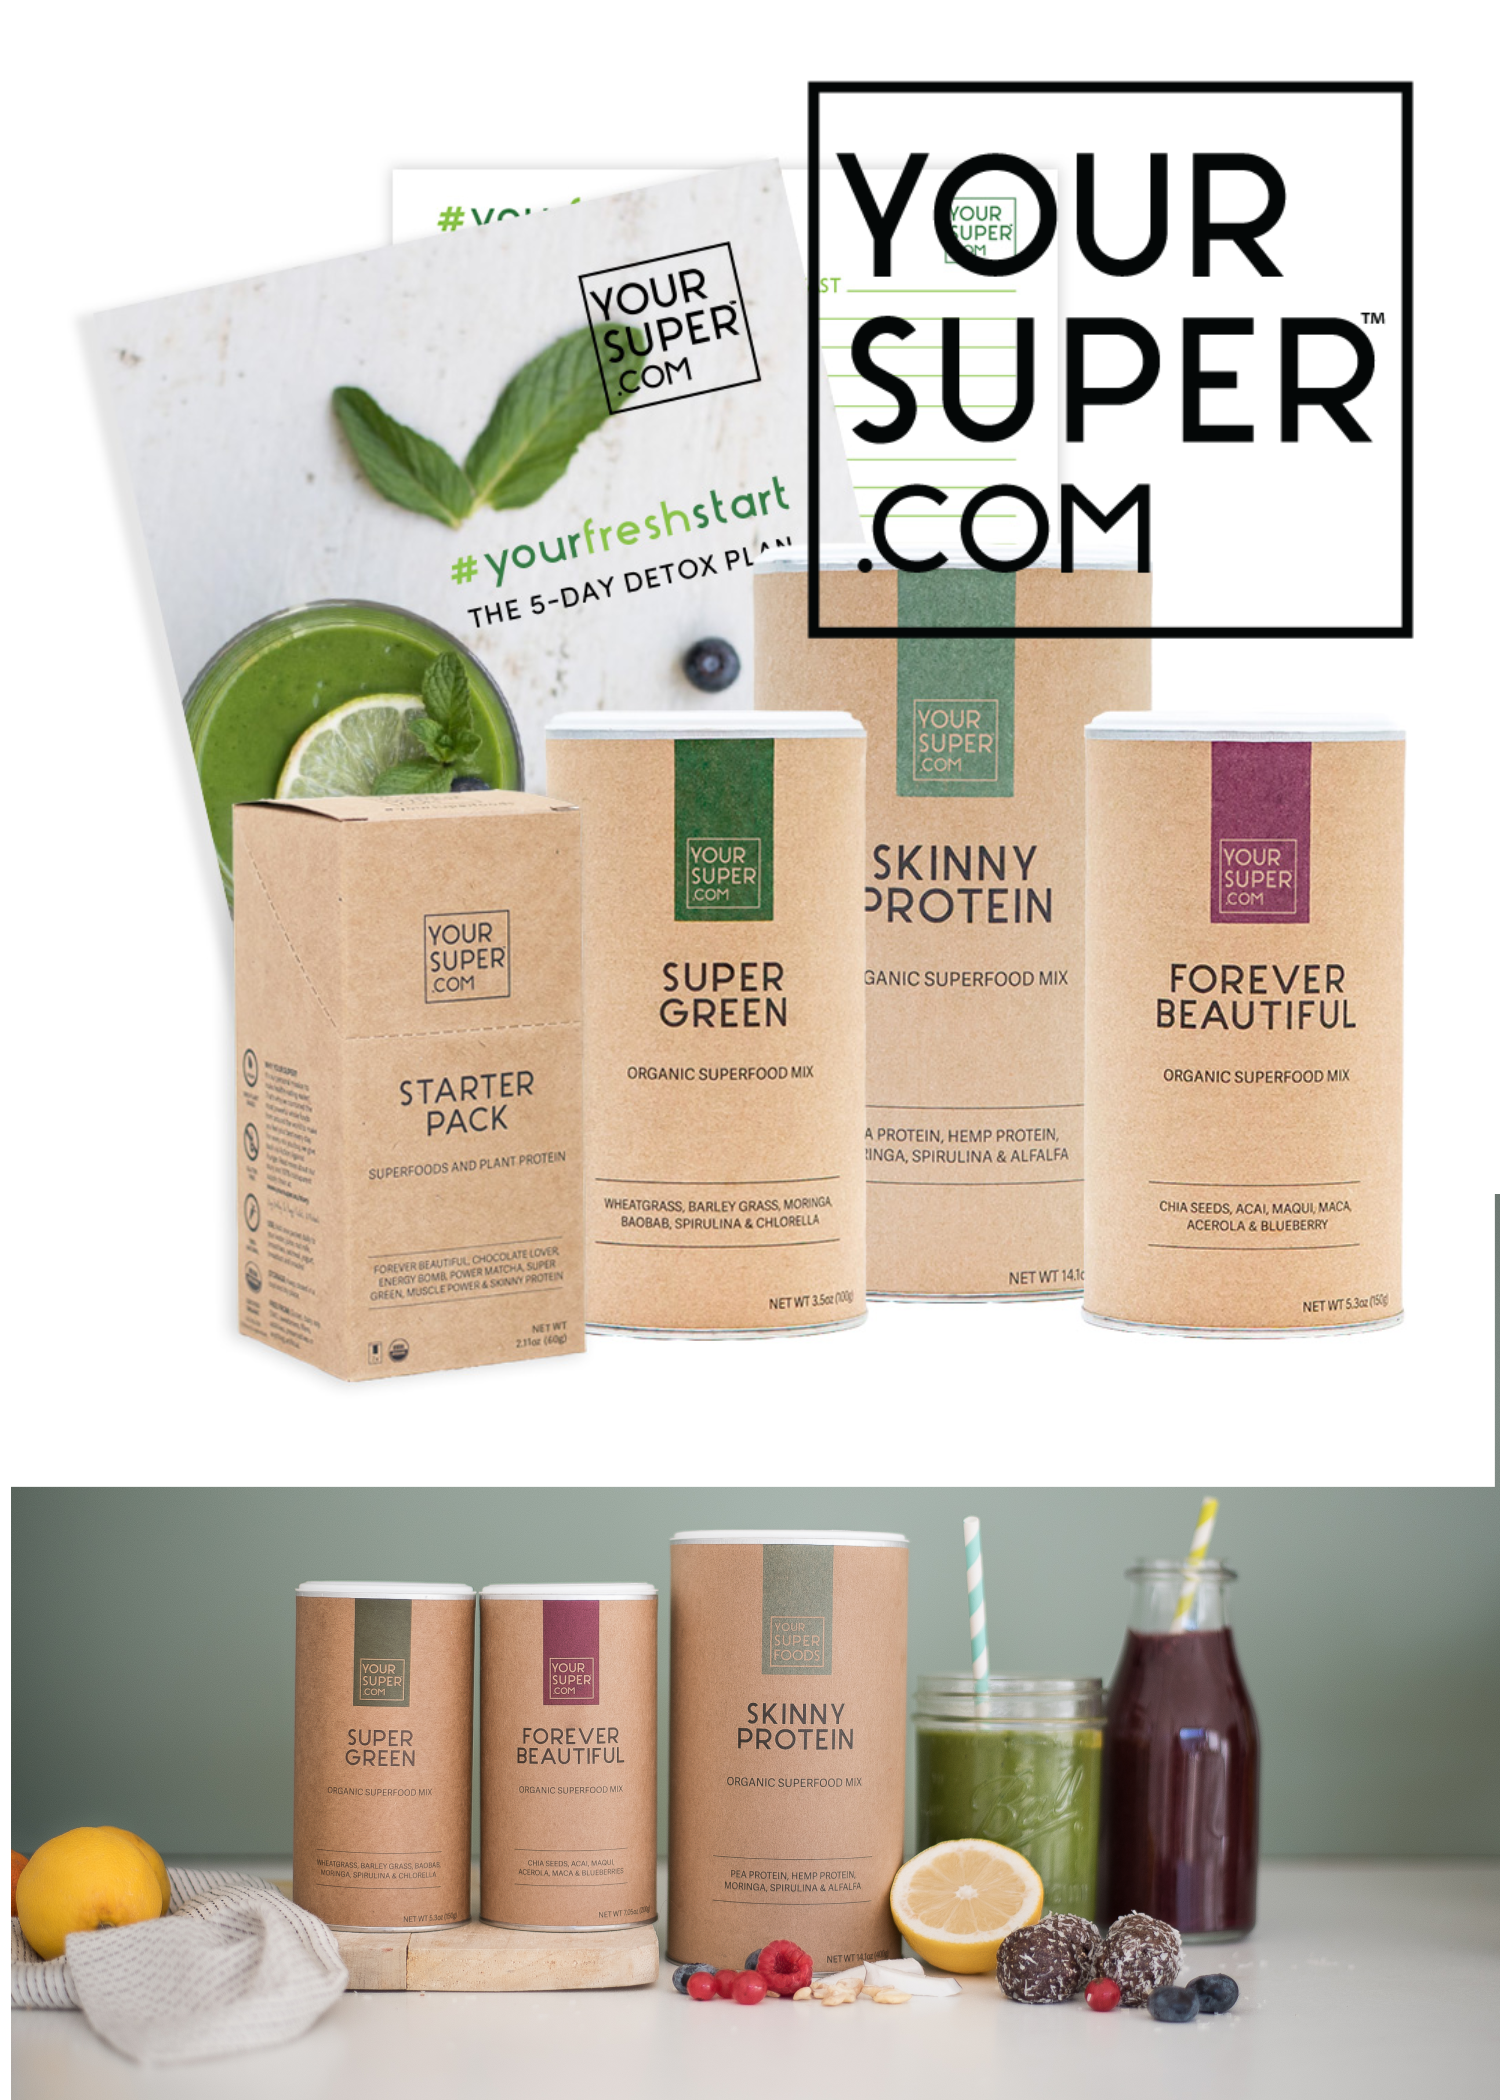 Your Super Detox Bundle #Superfoods #YourSuper #SuperMom